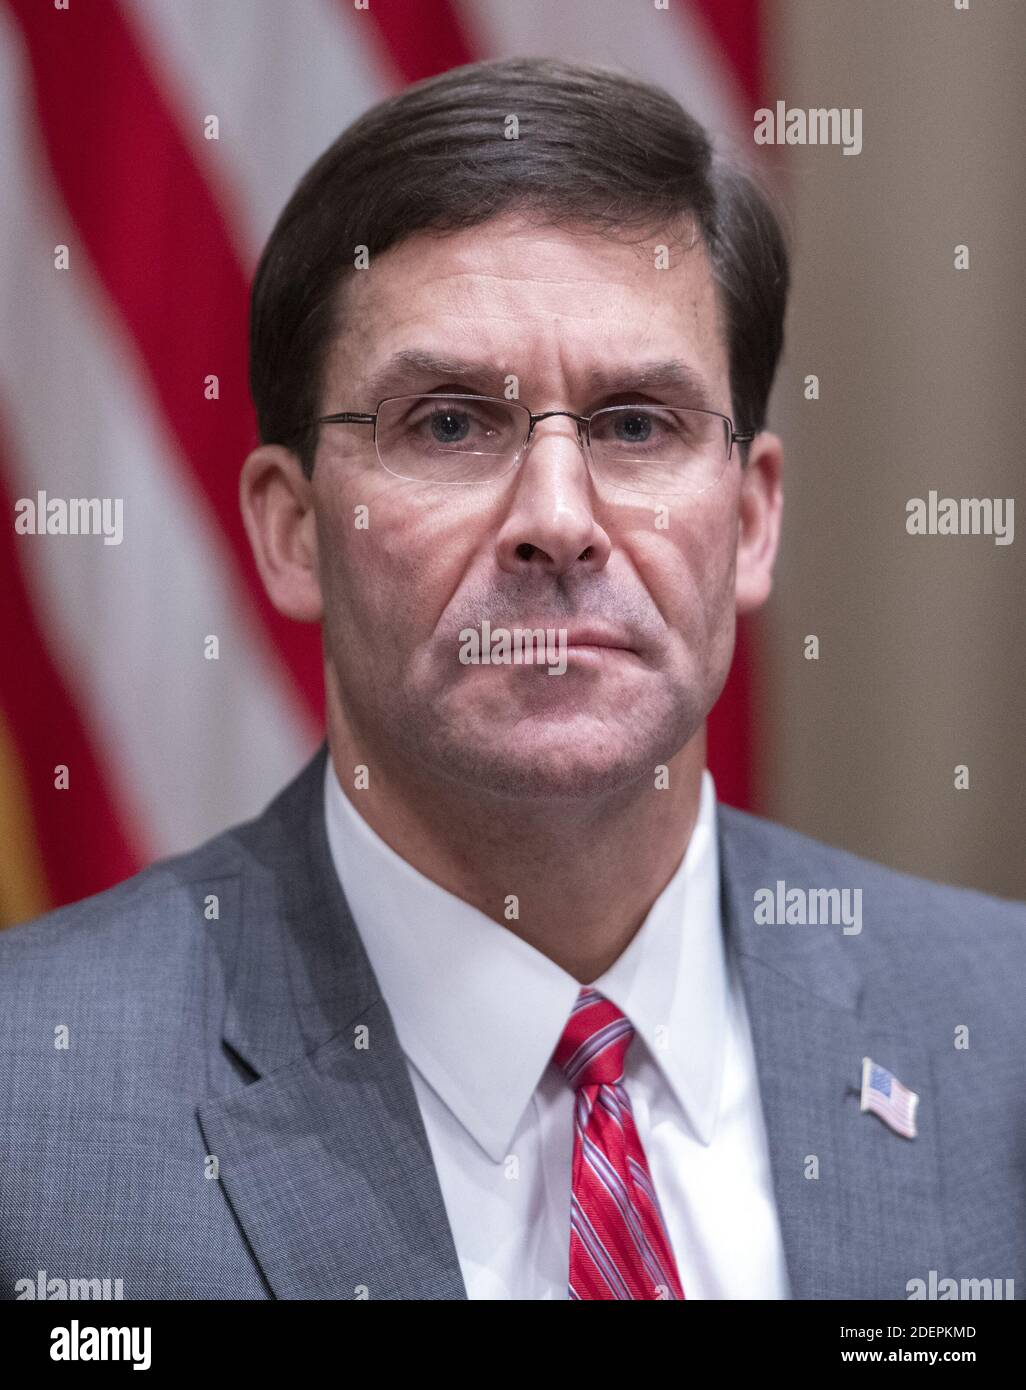 United States Secretary of Defense Dr. Mark T. Esper participates in a briefing with US President Donald J. Trump and senior military leaders in the Cabinet Room of the White House in Washington, DC, USA on Monday, October 7, 2019. Photo by Ron Sachs/CNP/ABACAPRESS.COM Stock Photo